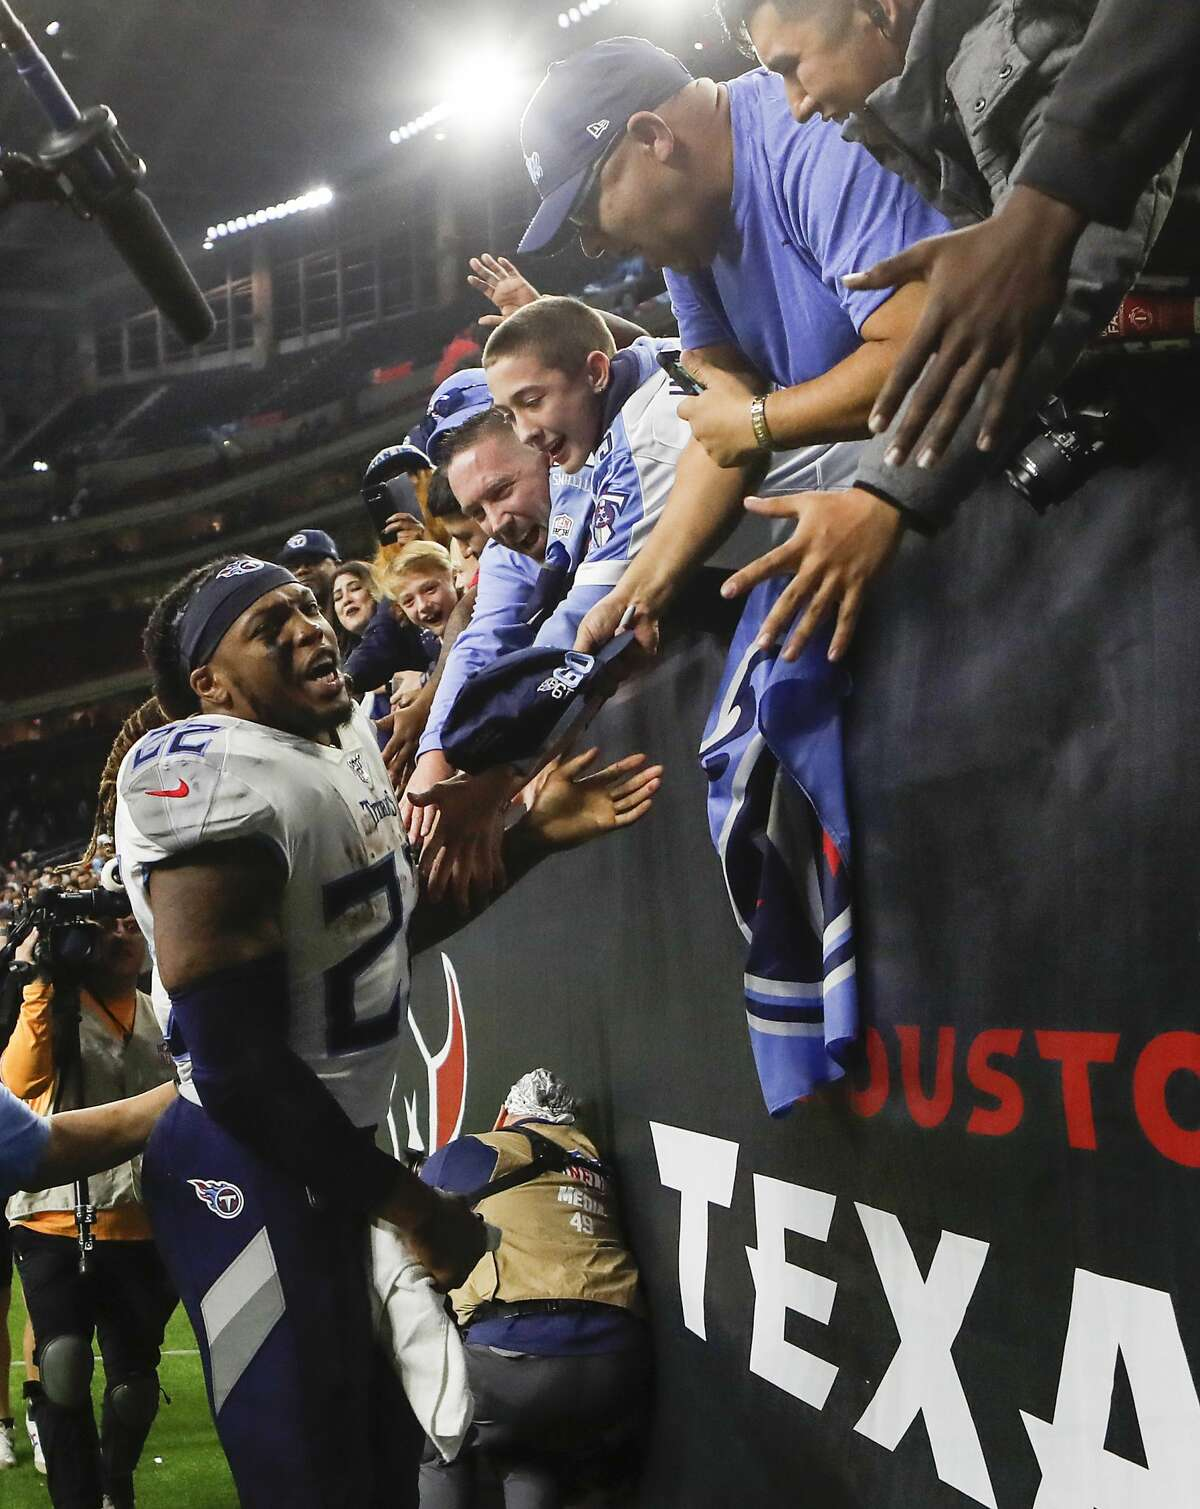 Tennessee Titans running back Derrick Henry (22) celebrates with Titans fans after beating the Houston Texans 35-14 in an NFL football game at NRG Stadium on Sunday, Dec. 29, 2019, in Houston.